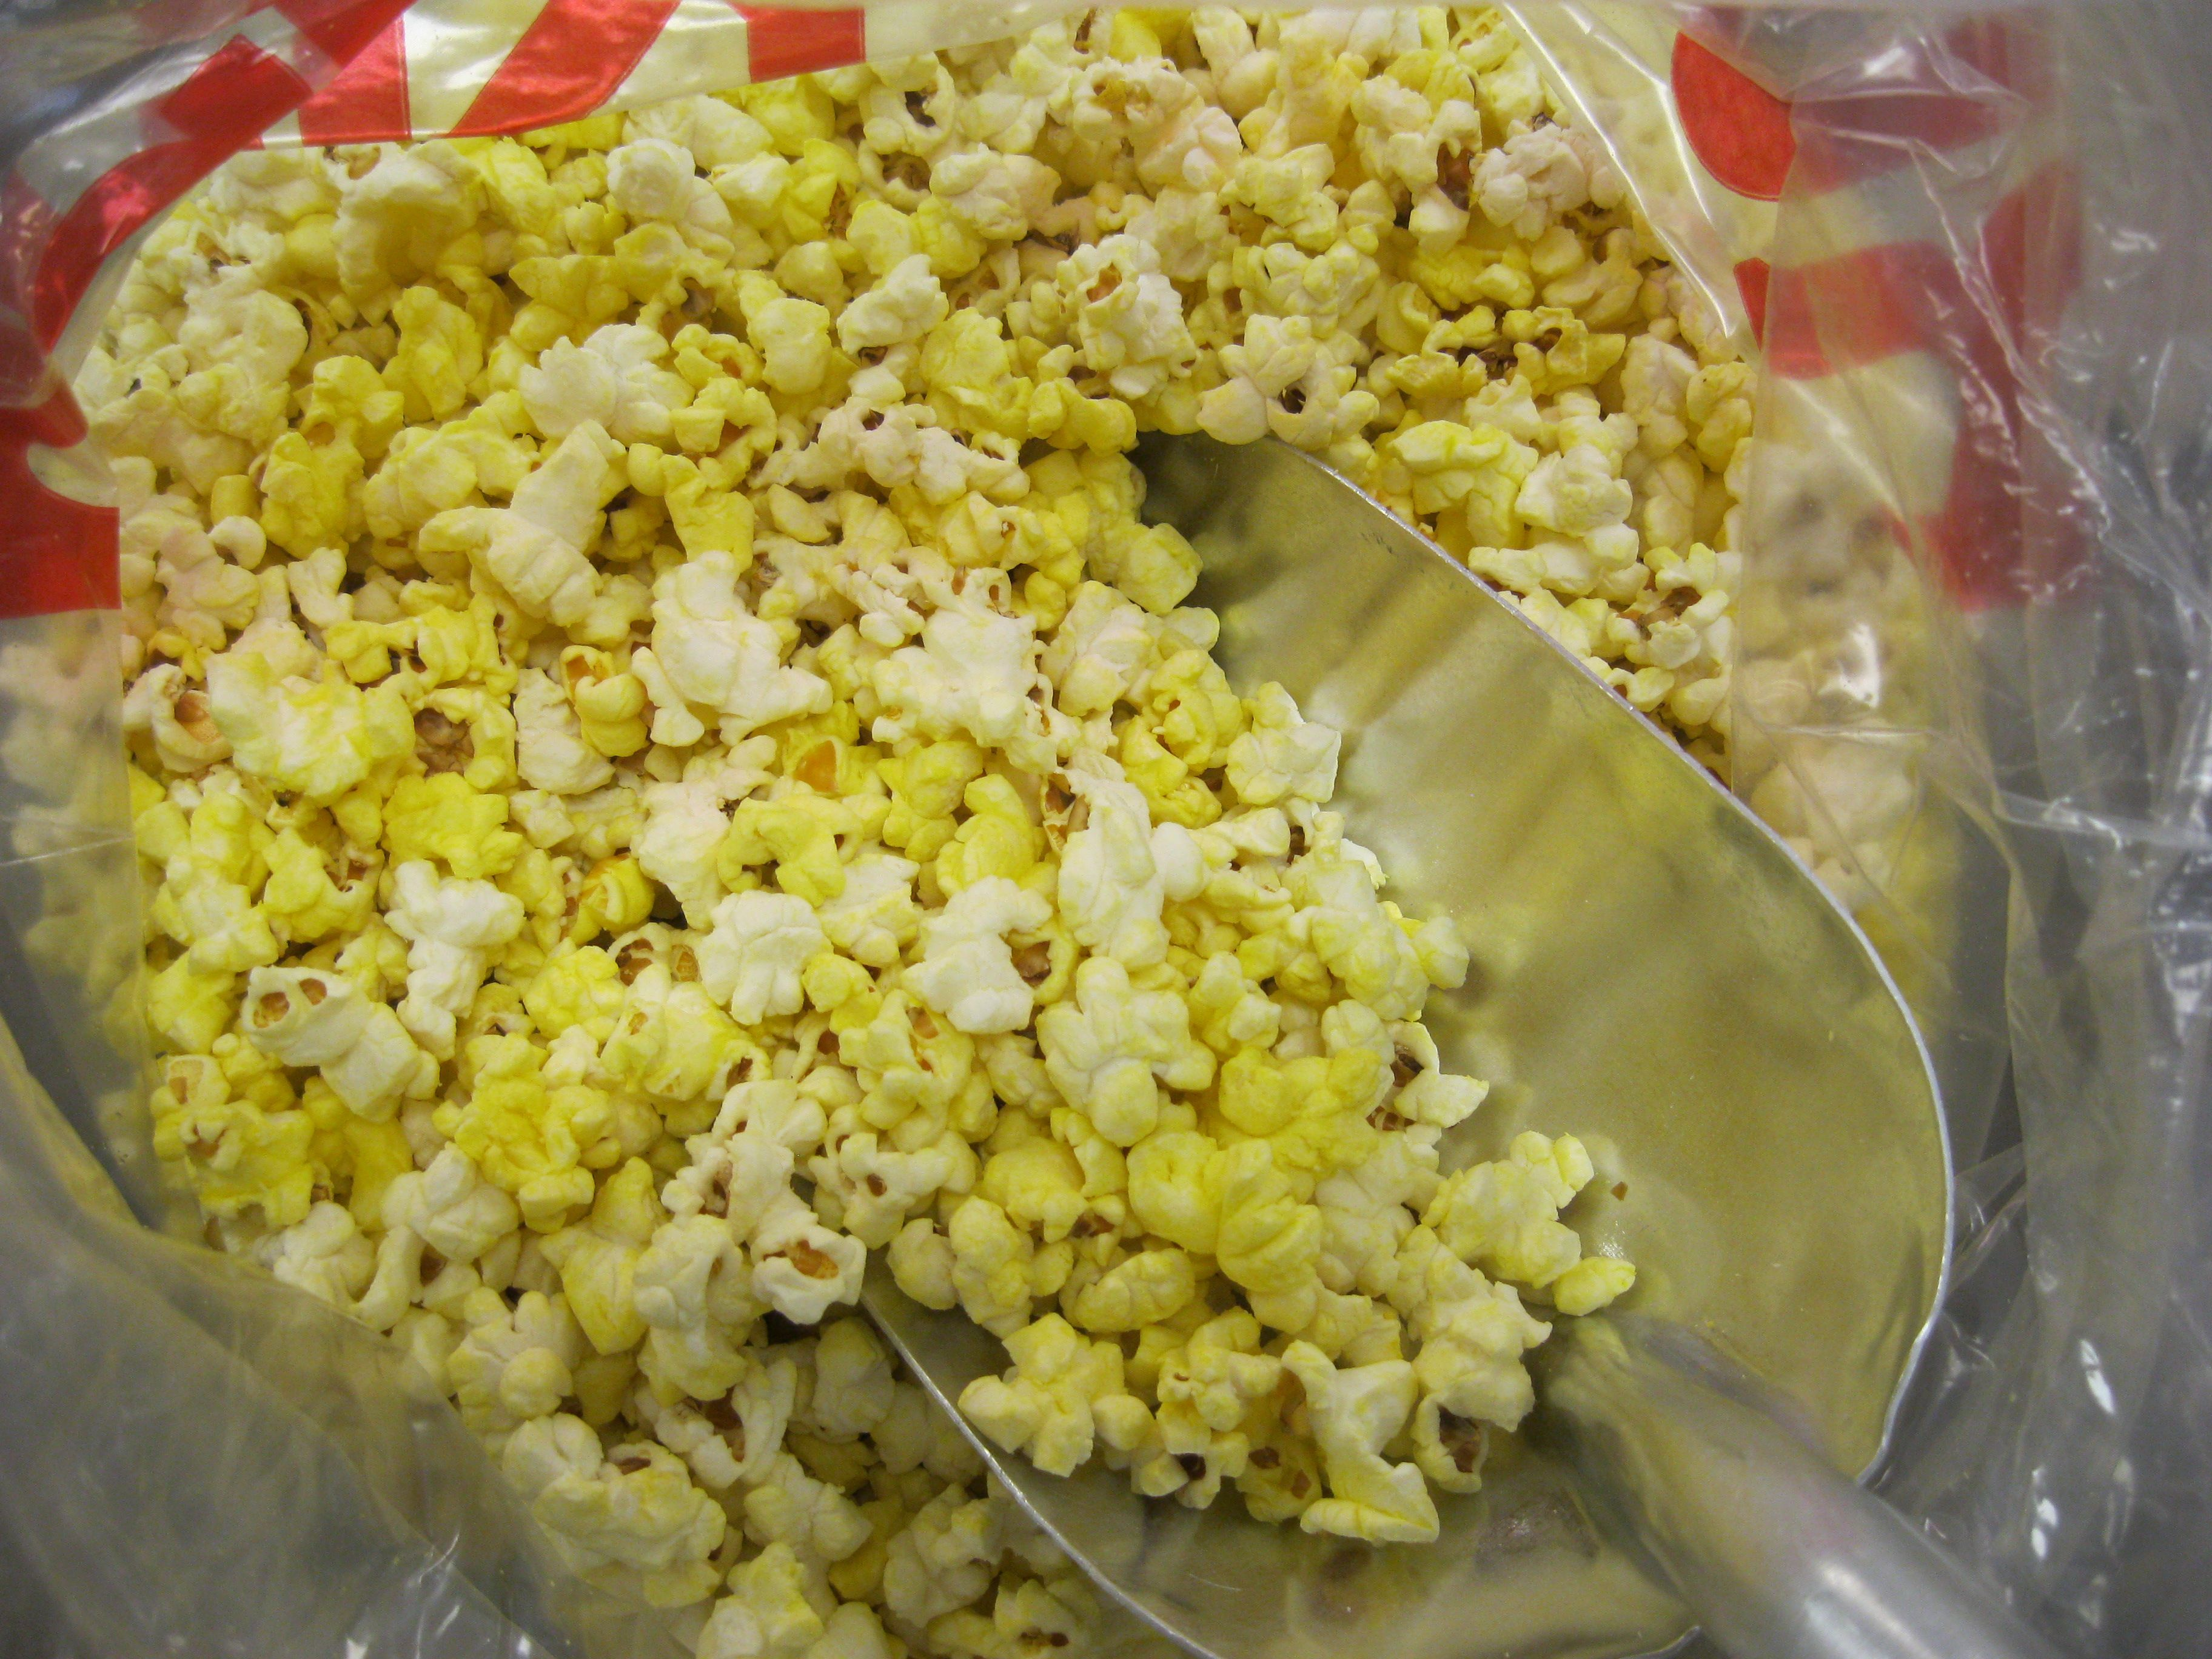 March 13th Popcorn Lovers Day